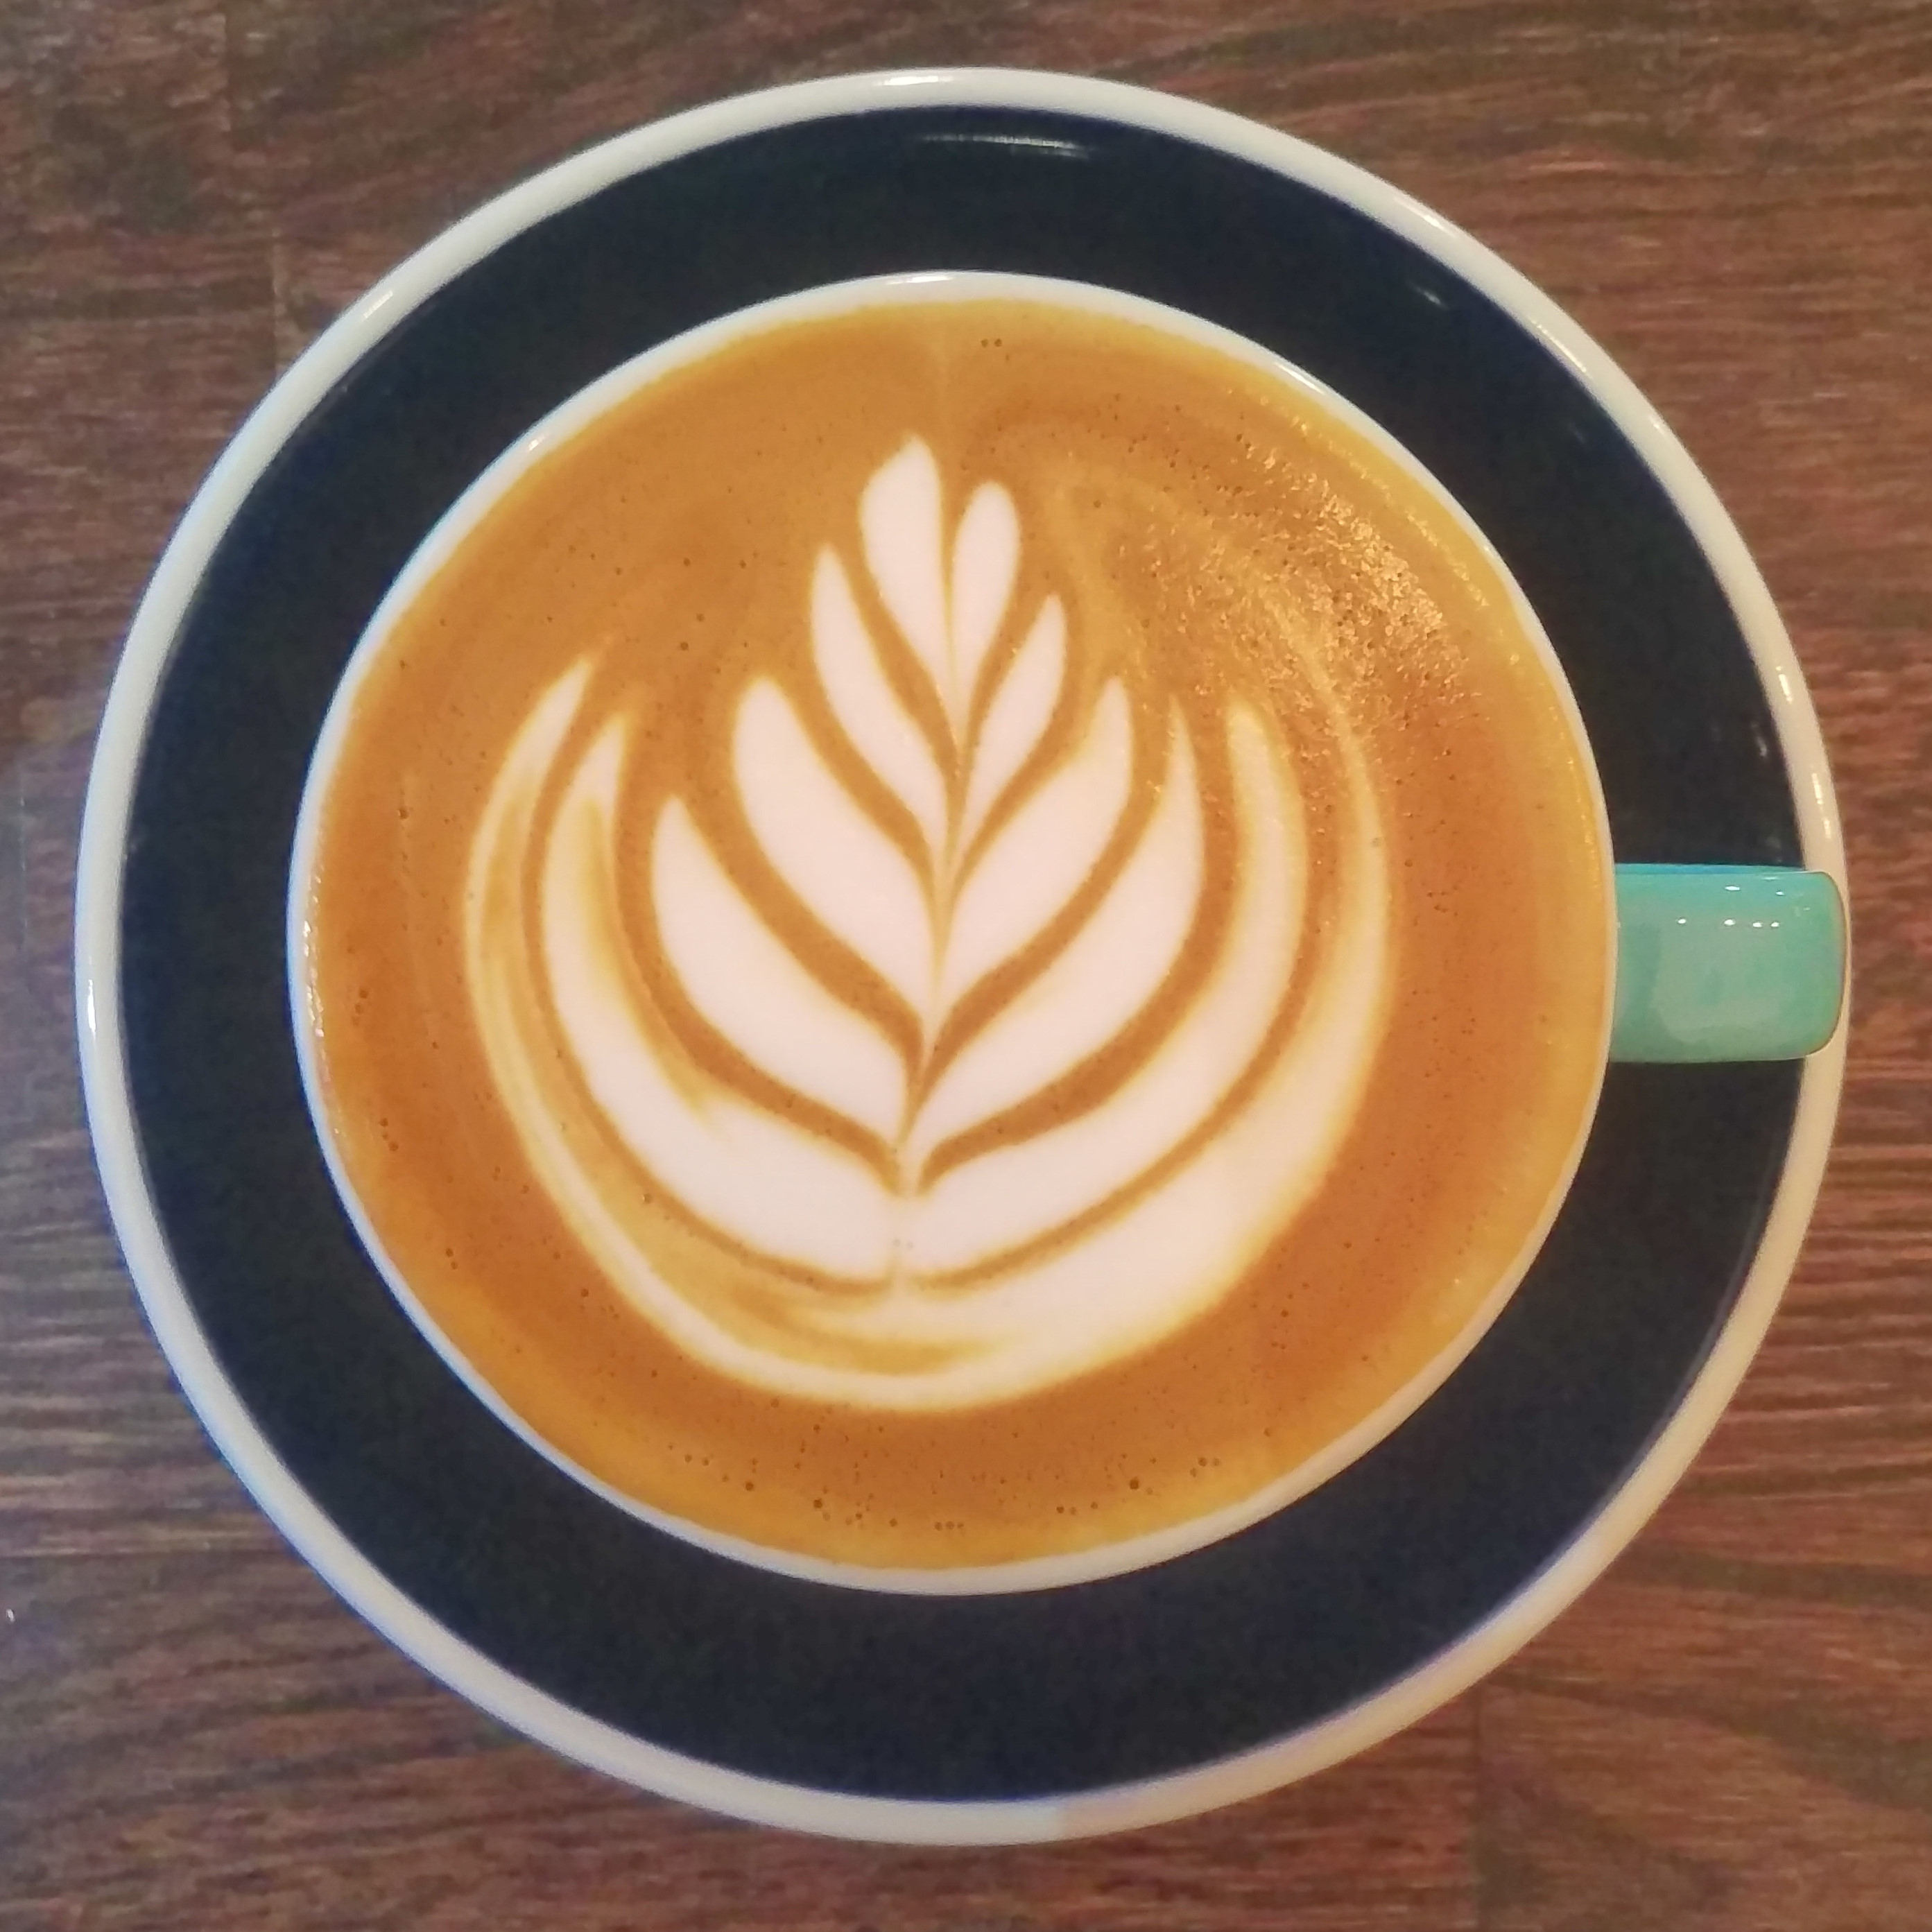 Some lovely latte art in my flat white at Hunter Gatherer in Southsea.